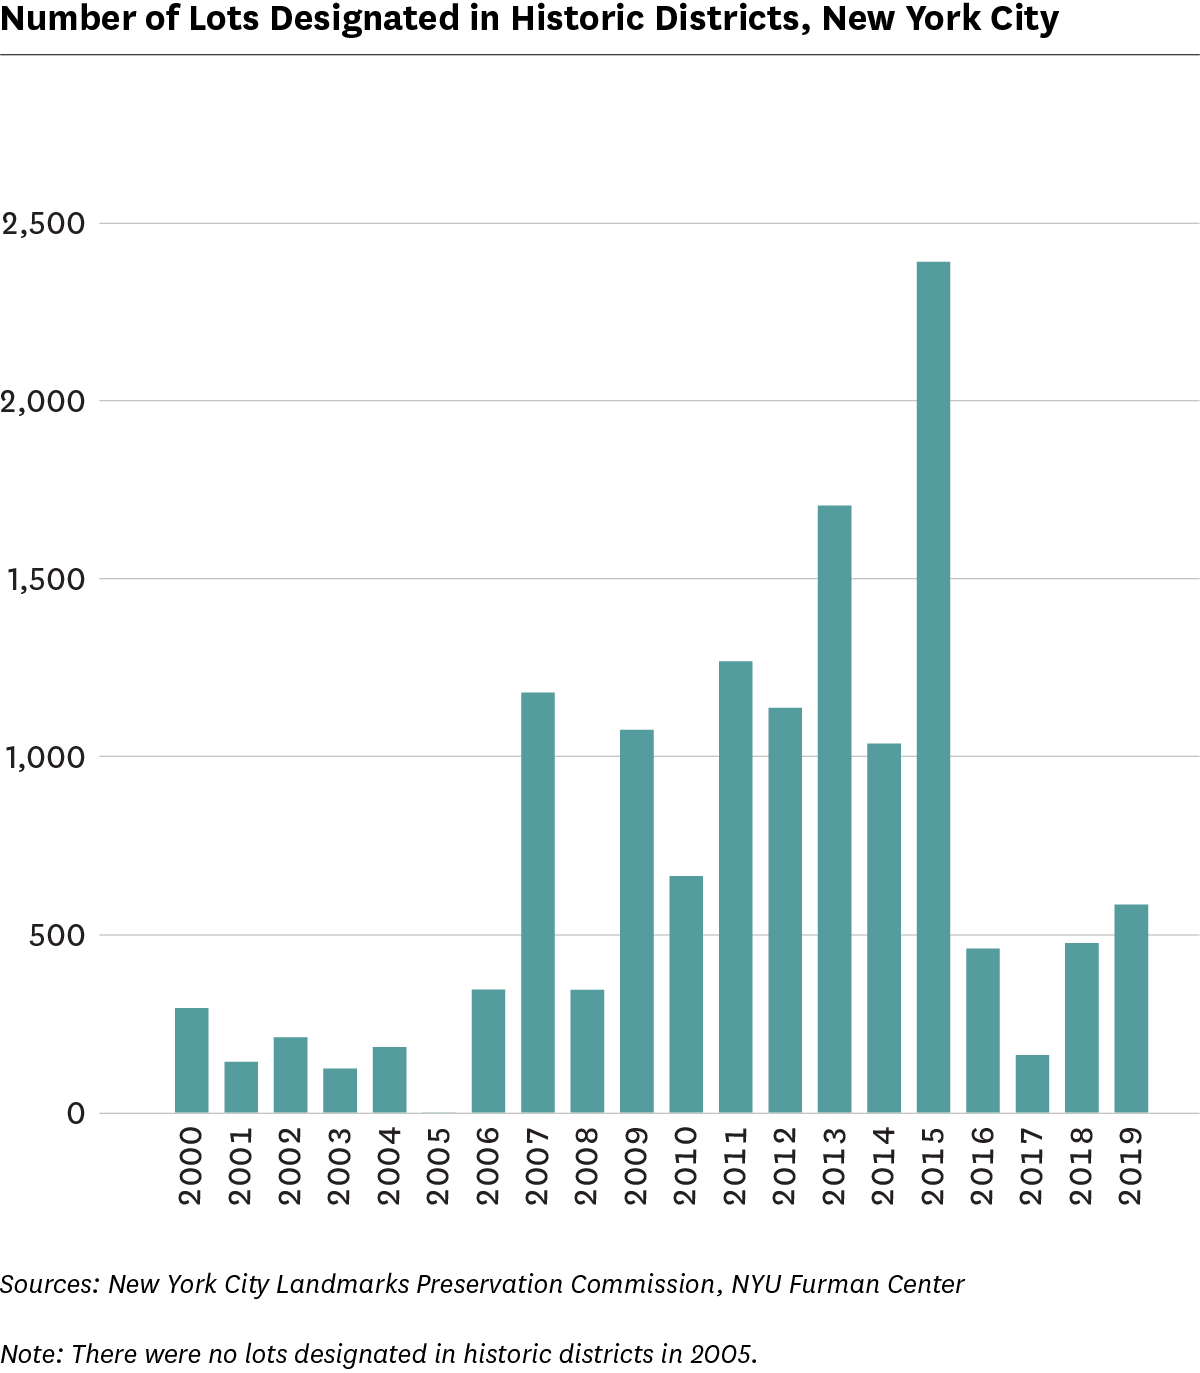 Bar graphs showing number of designated in historic districts, 2000 to 2019